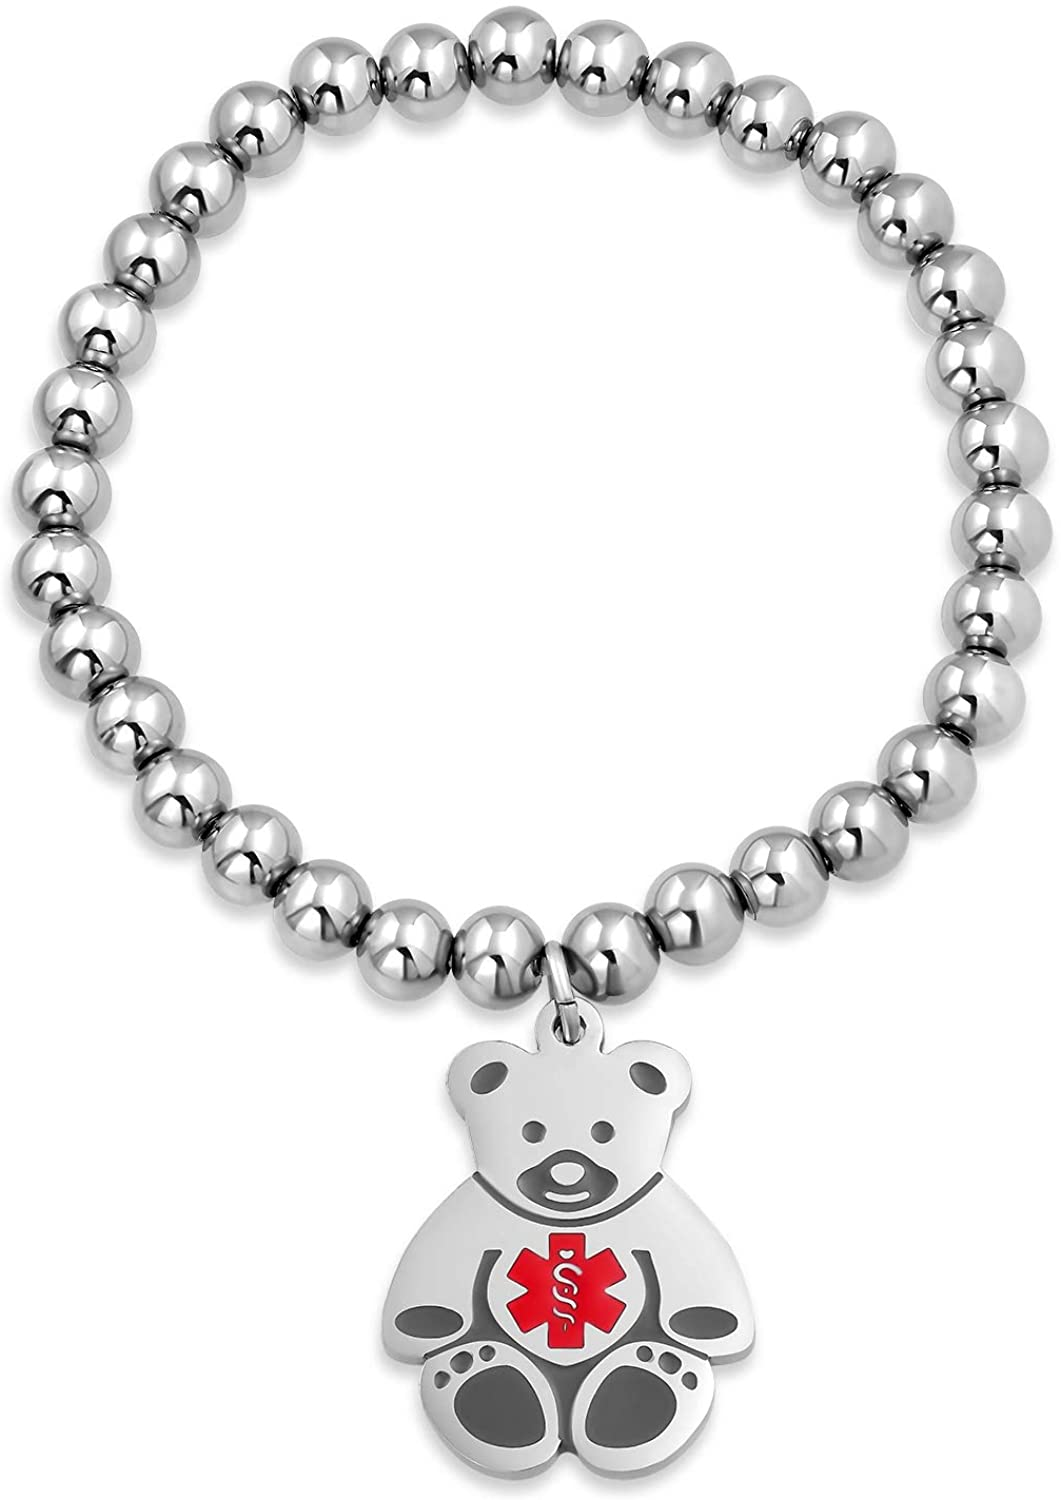 Personalize Customizable Medical Alert ID Stretch Bead Bracelet Teddy Bear Charm Tag Engrave for Women Teen Silver Tone